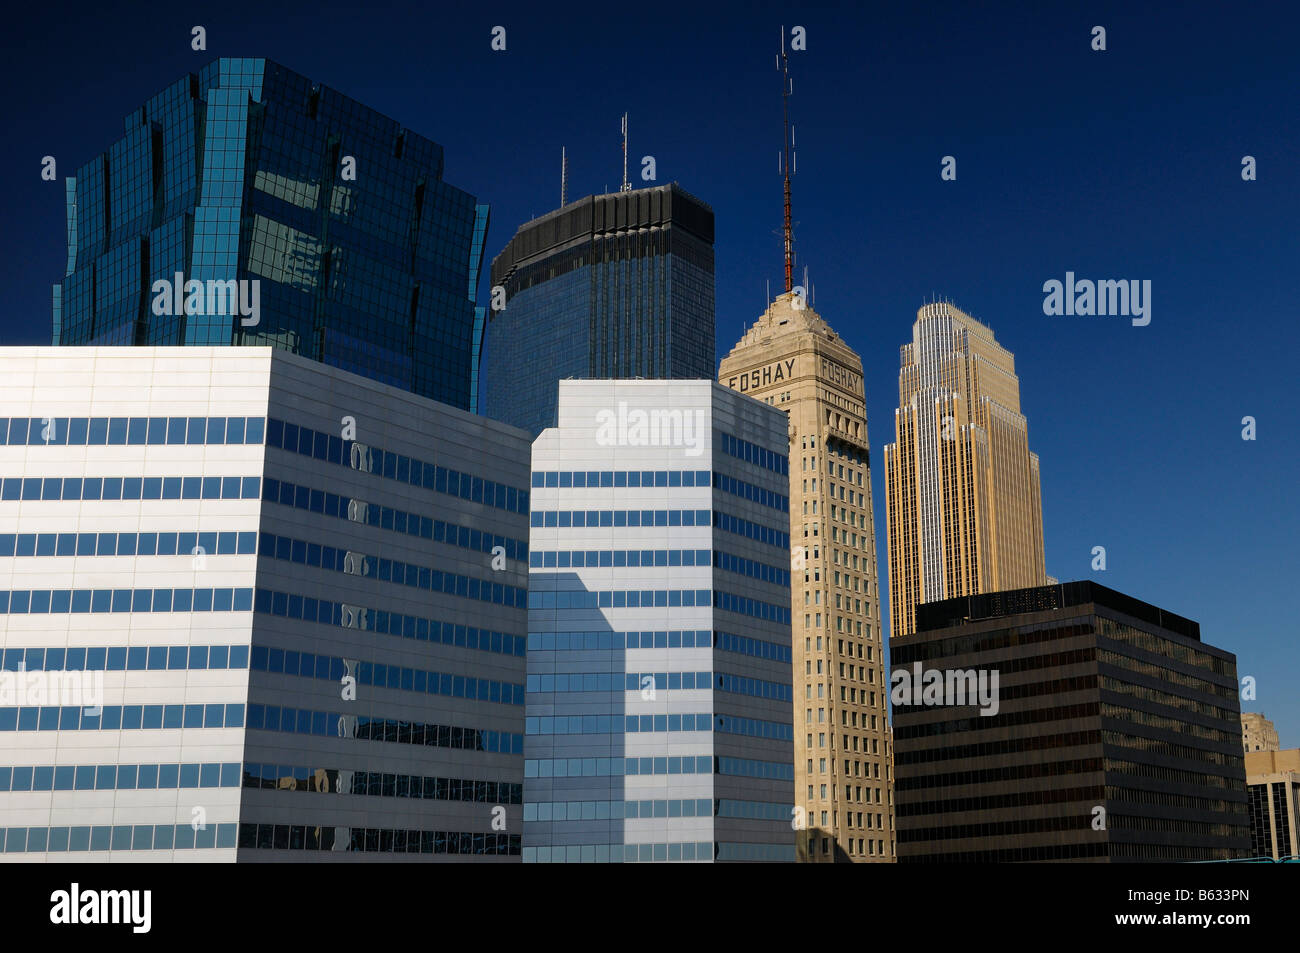 Kinnard Financial and AT and T and IDS and Foshay and TCF Towers and Wells Fargo in Minneapolis blue sky cityscape - Stock Image